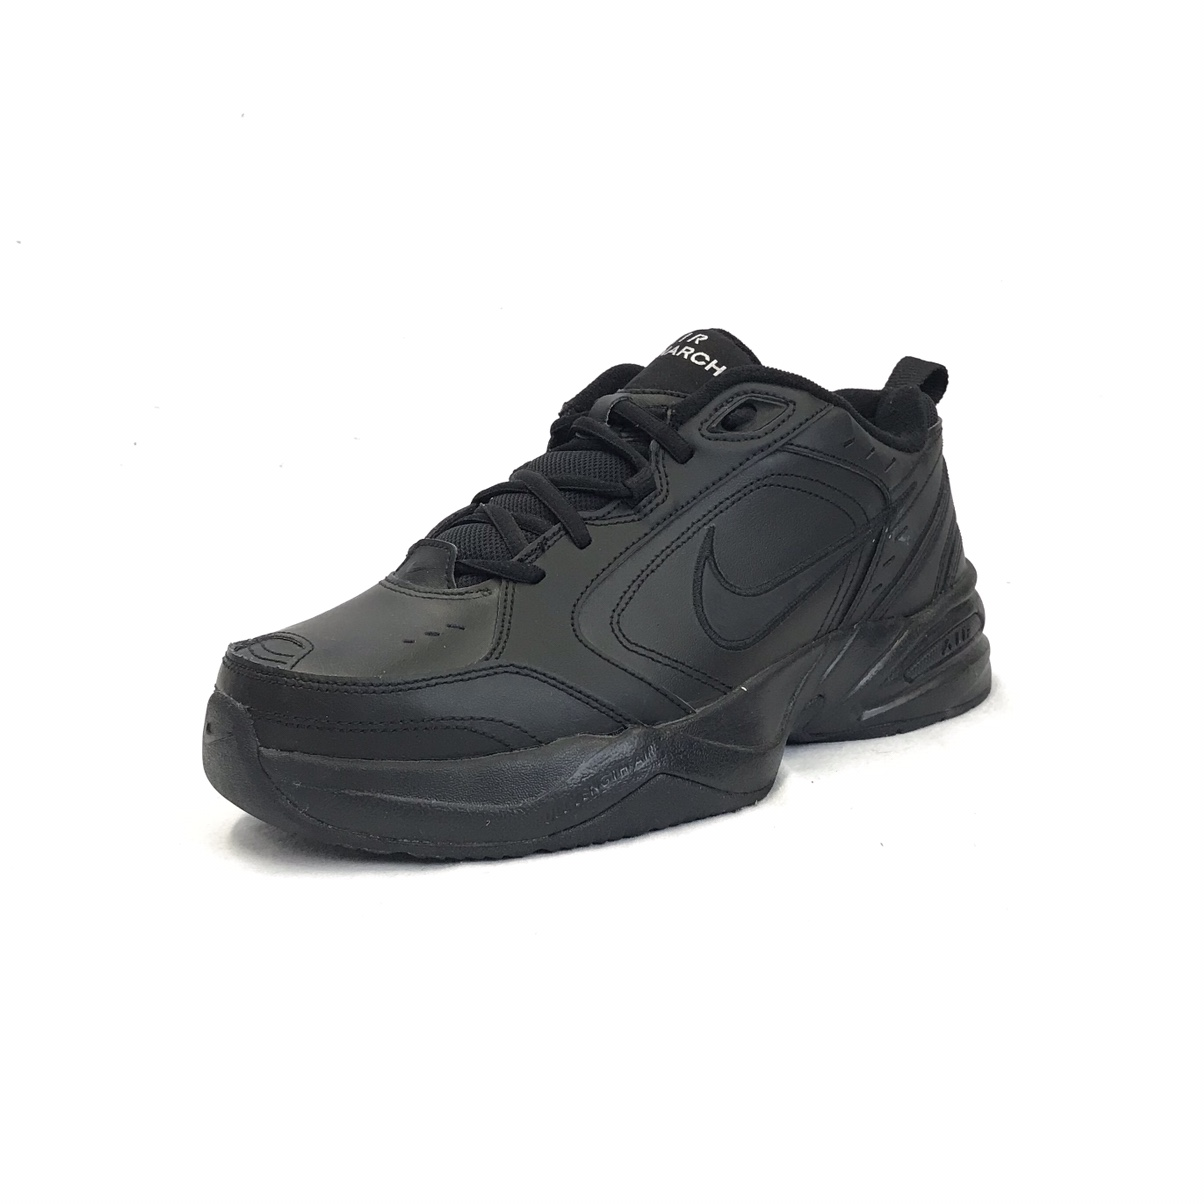 Nike Air Monarch trainers - size UK 8